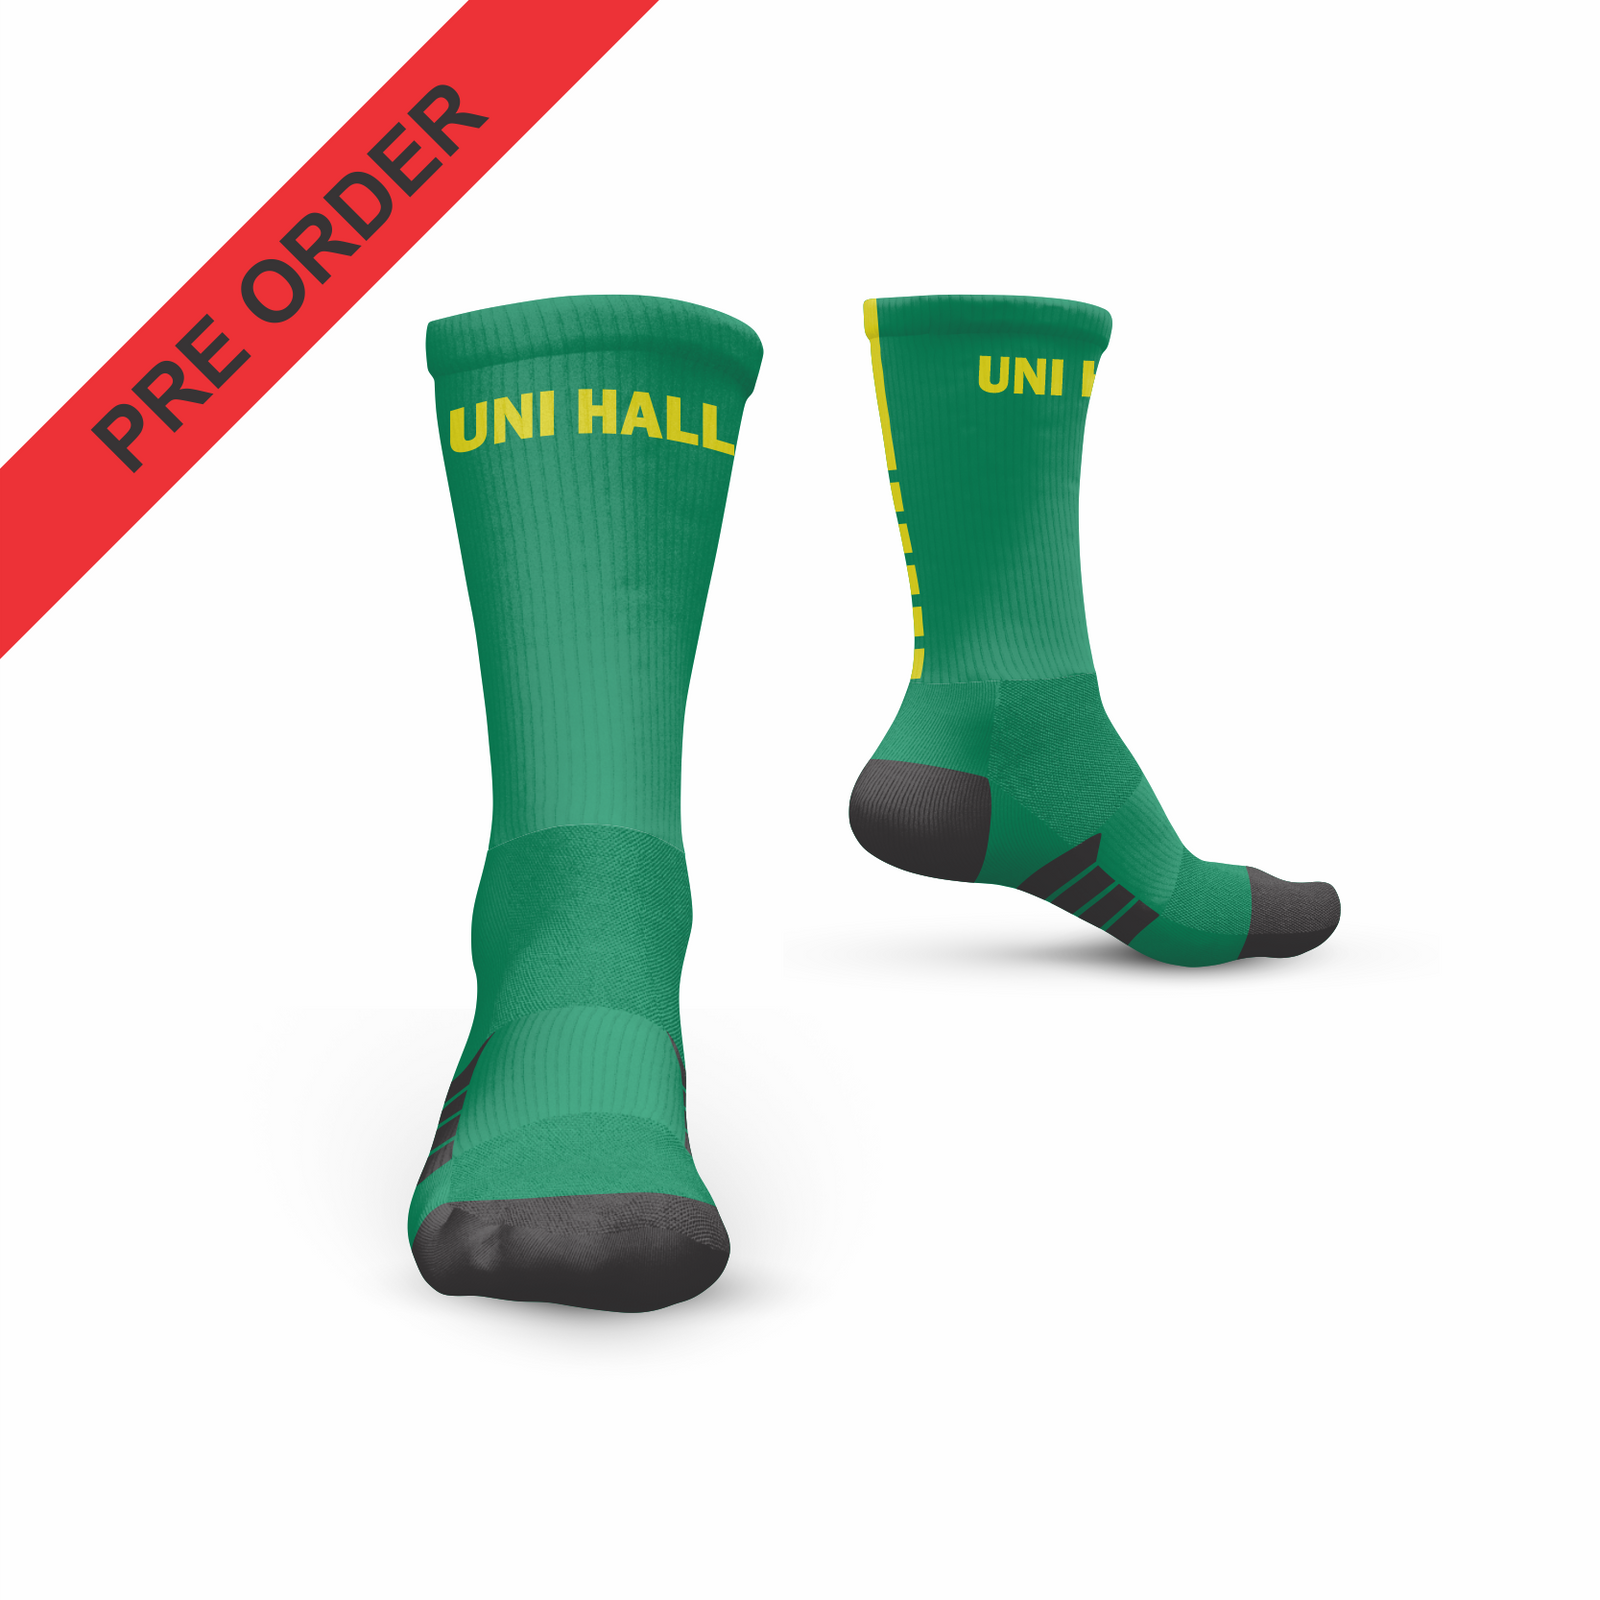 University Hall - EV2 Pro Sock